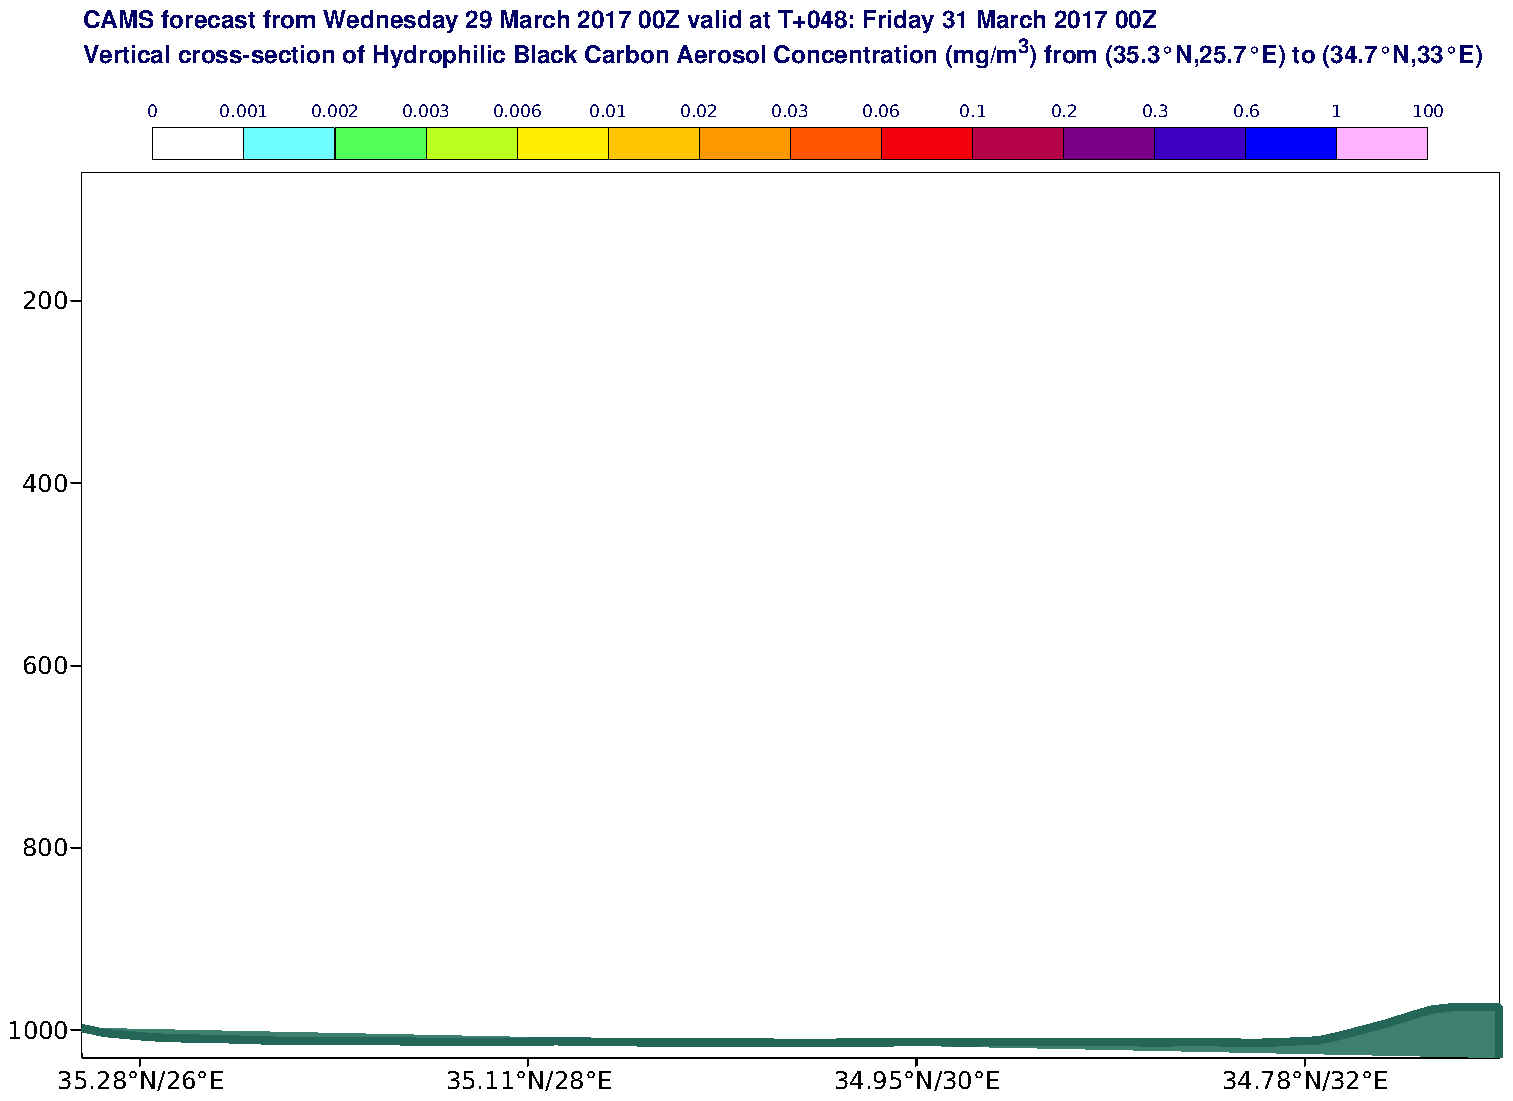 Vertical cross-section of Hydrophilic Black Carbon Aerosol Concentration (mg/m3) valid at T48 - 2017-03-31 00:00